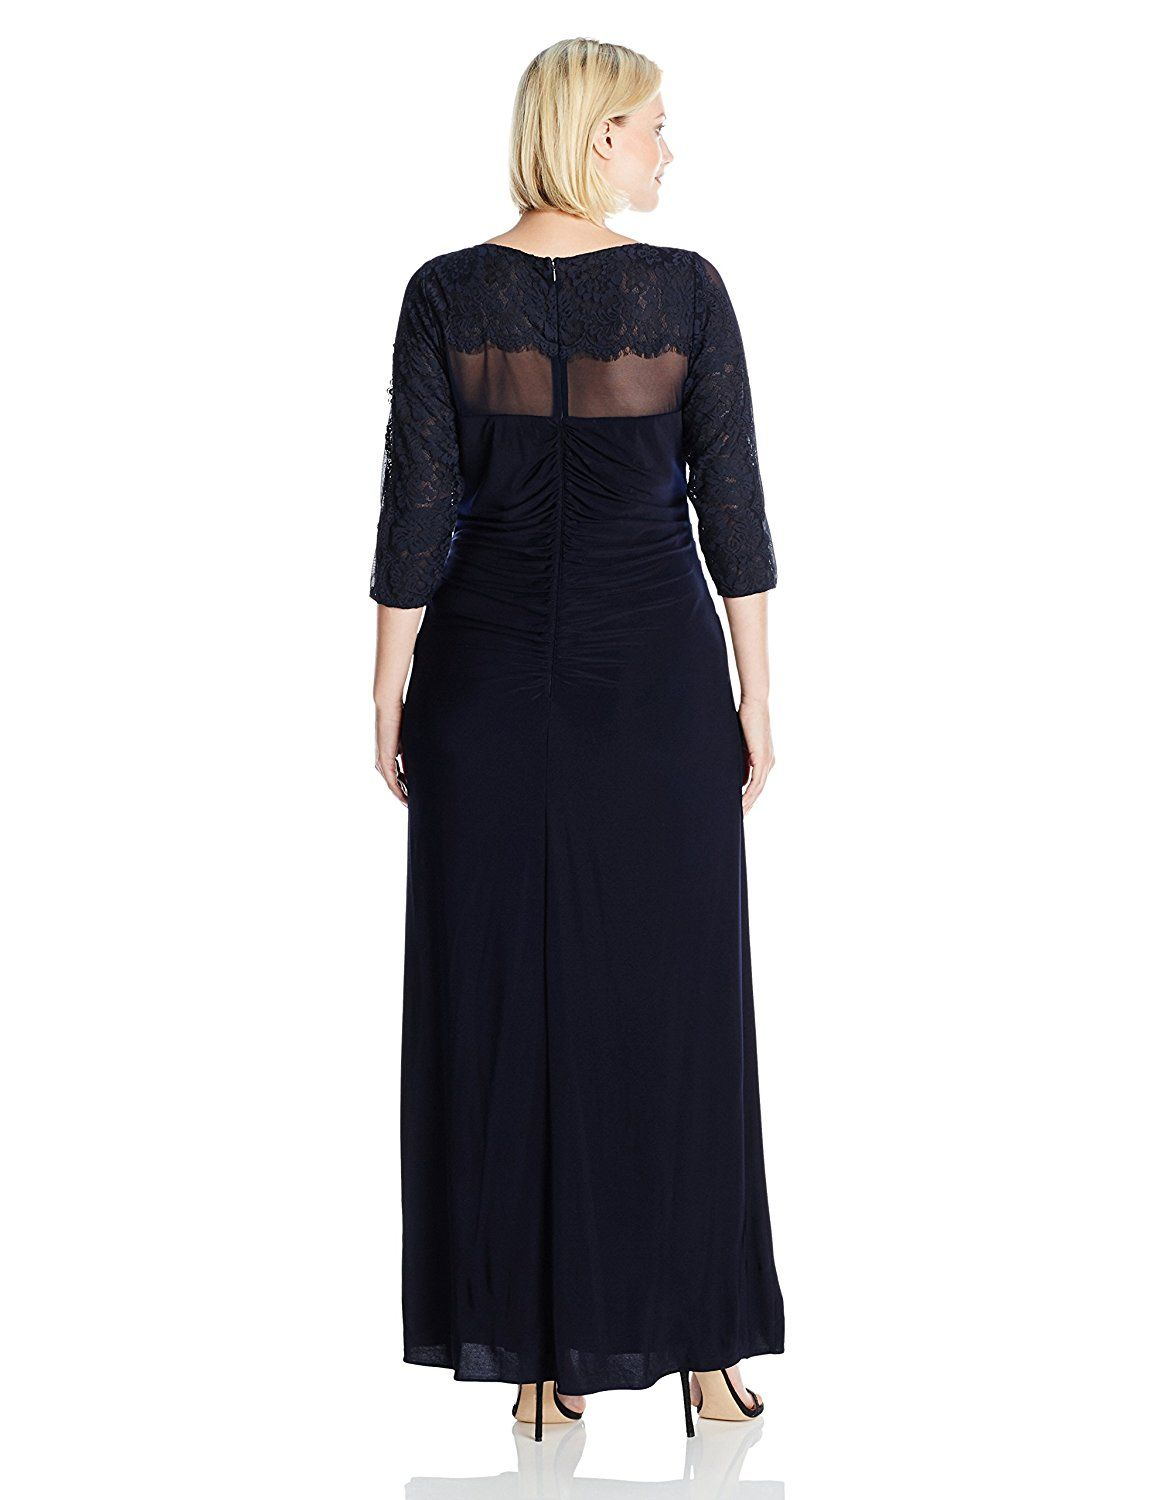 Xscape womenus plus size long ity with lace sleeves you can find